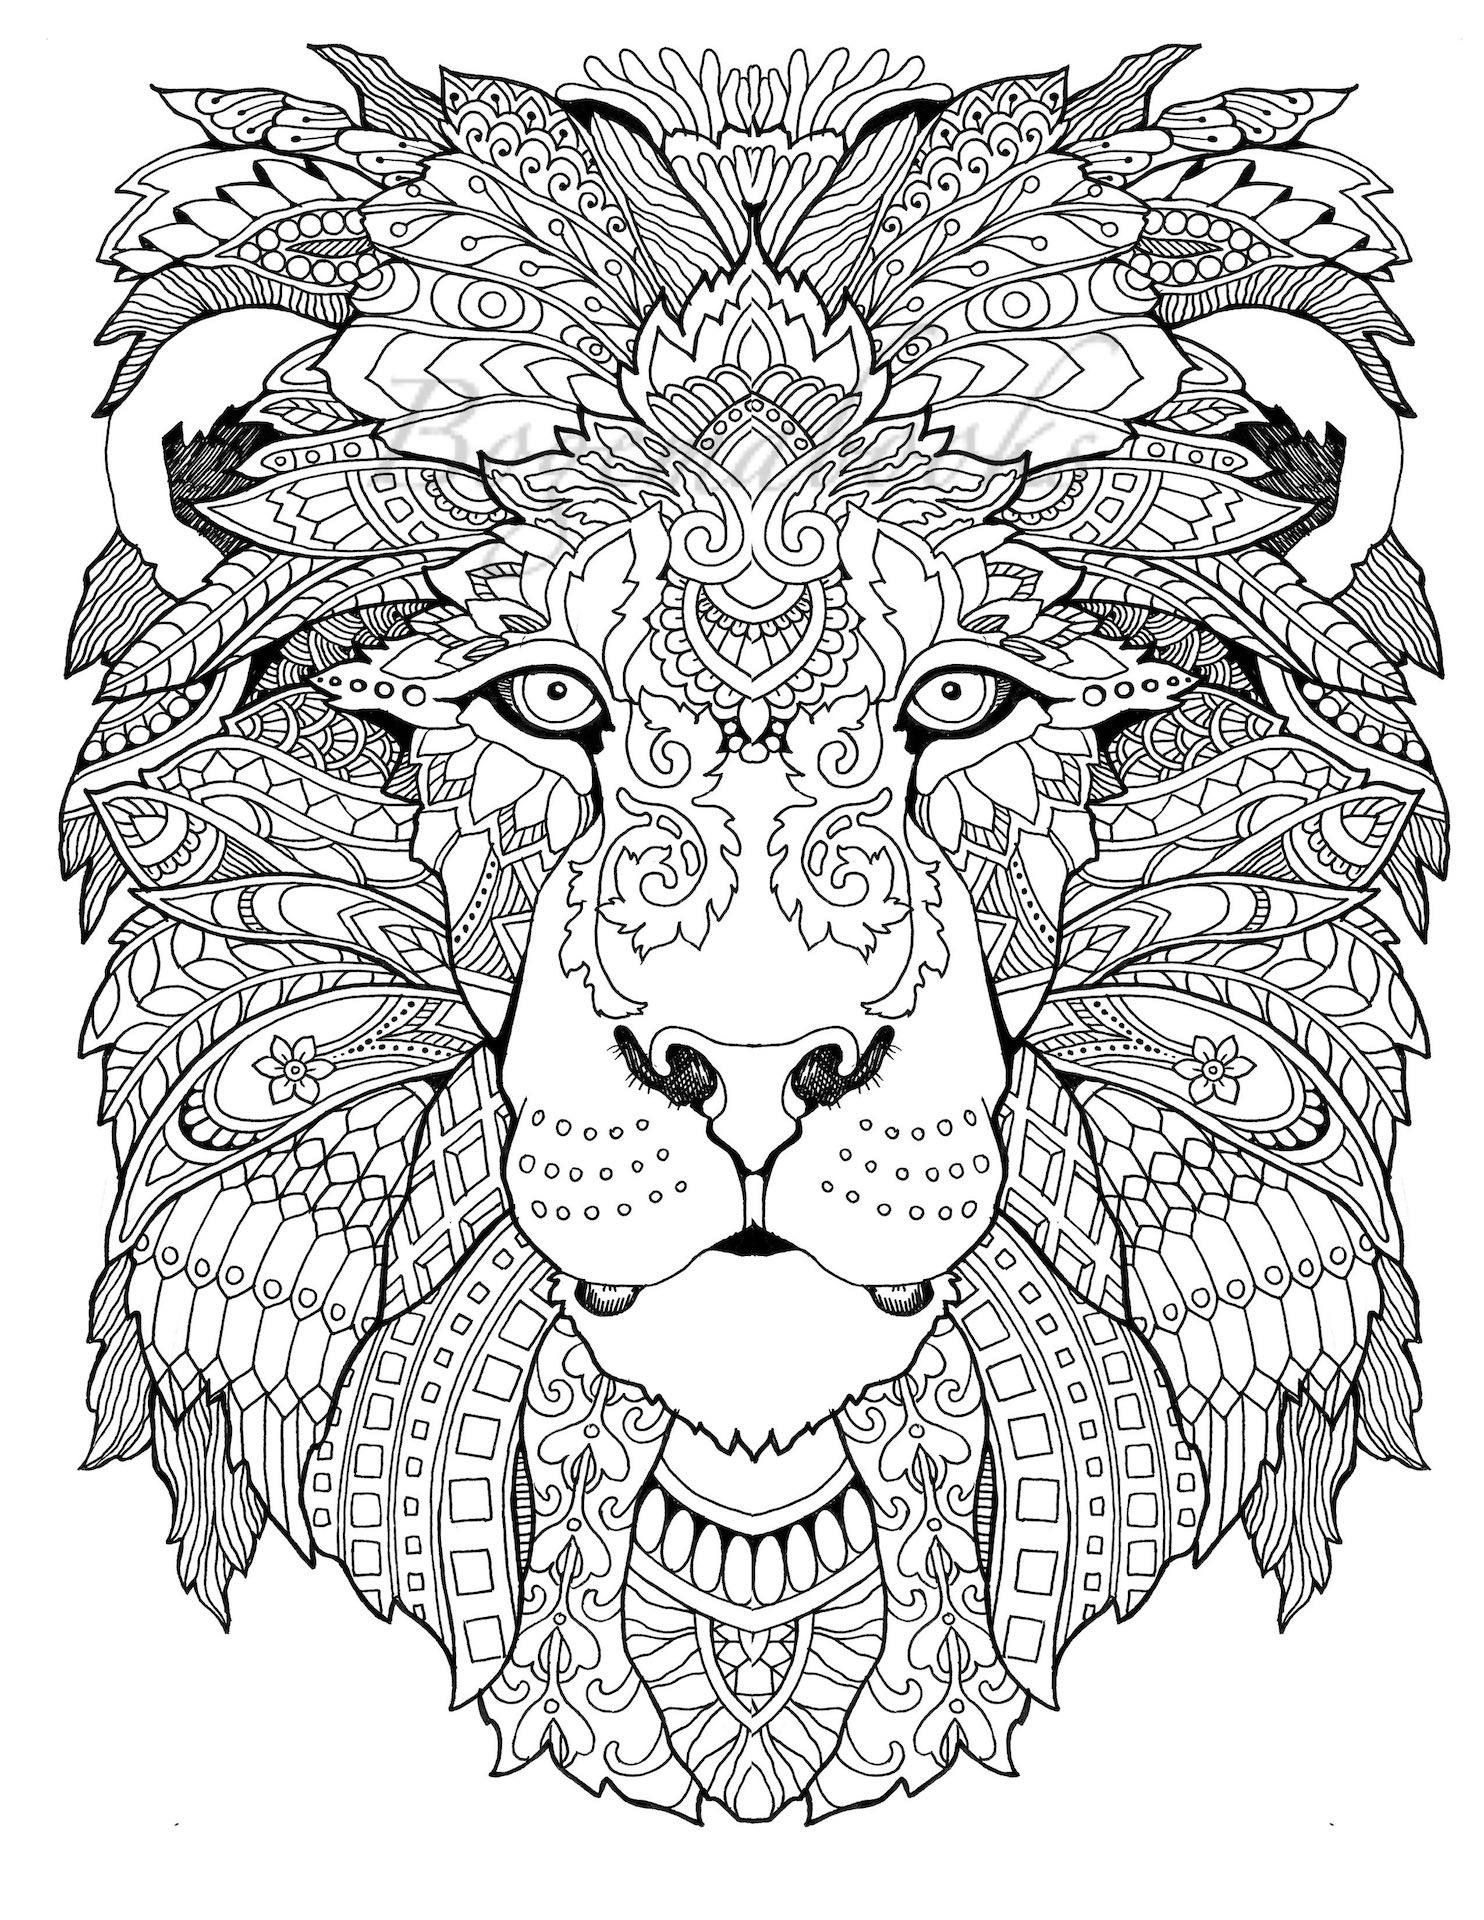 awesome animals (adult coloring pages, coloring pages